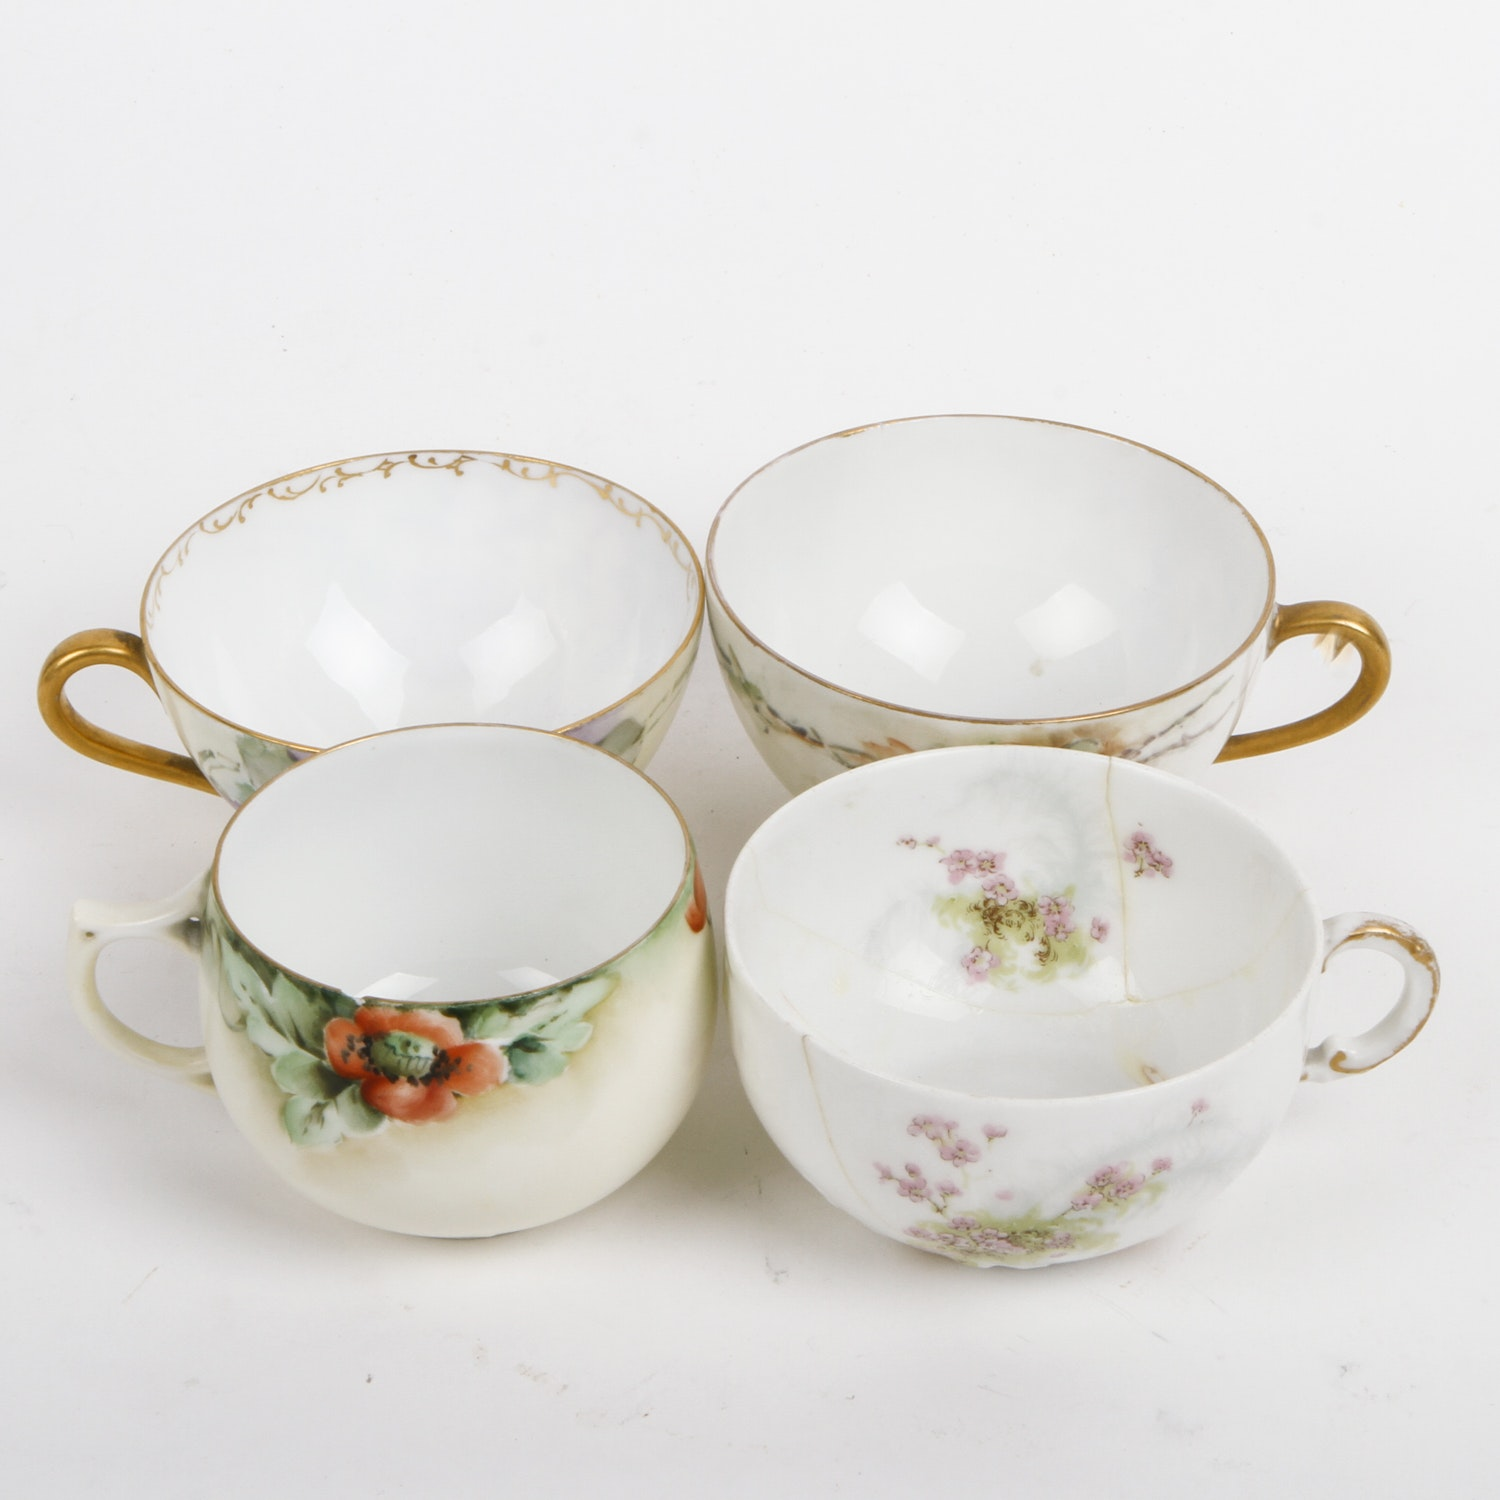 Vintage Teacup Assortment